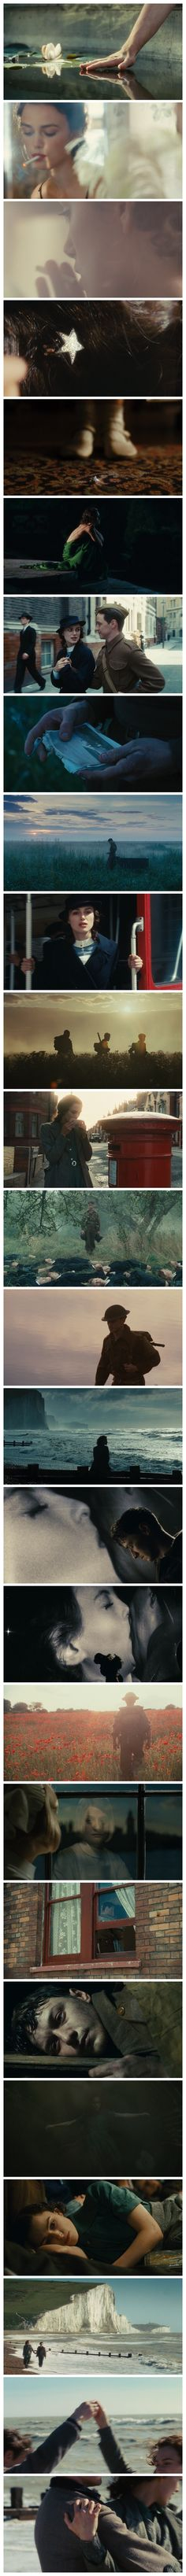 Atonement (Joe Wright, 2007) DoP: Seamus McGarvey